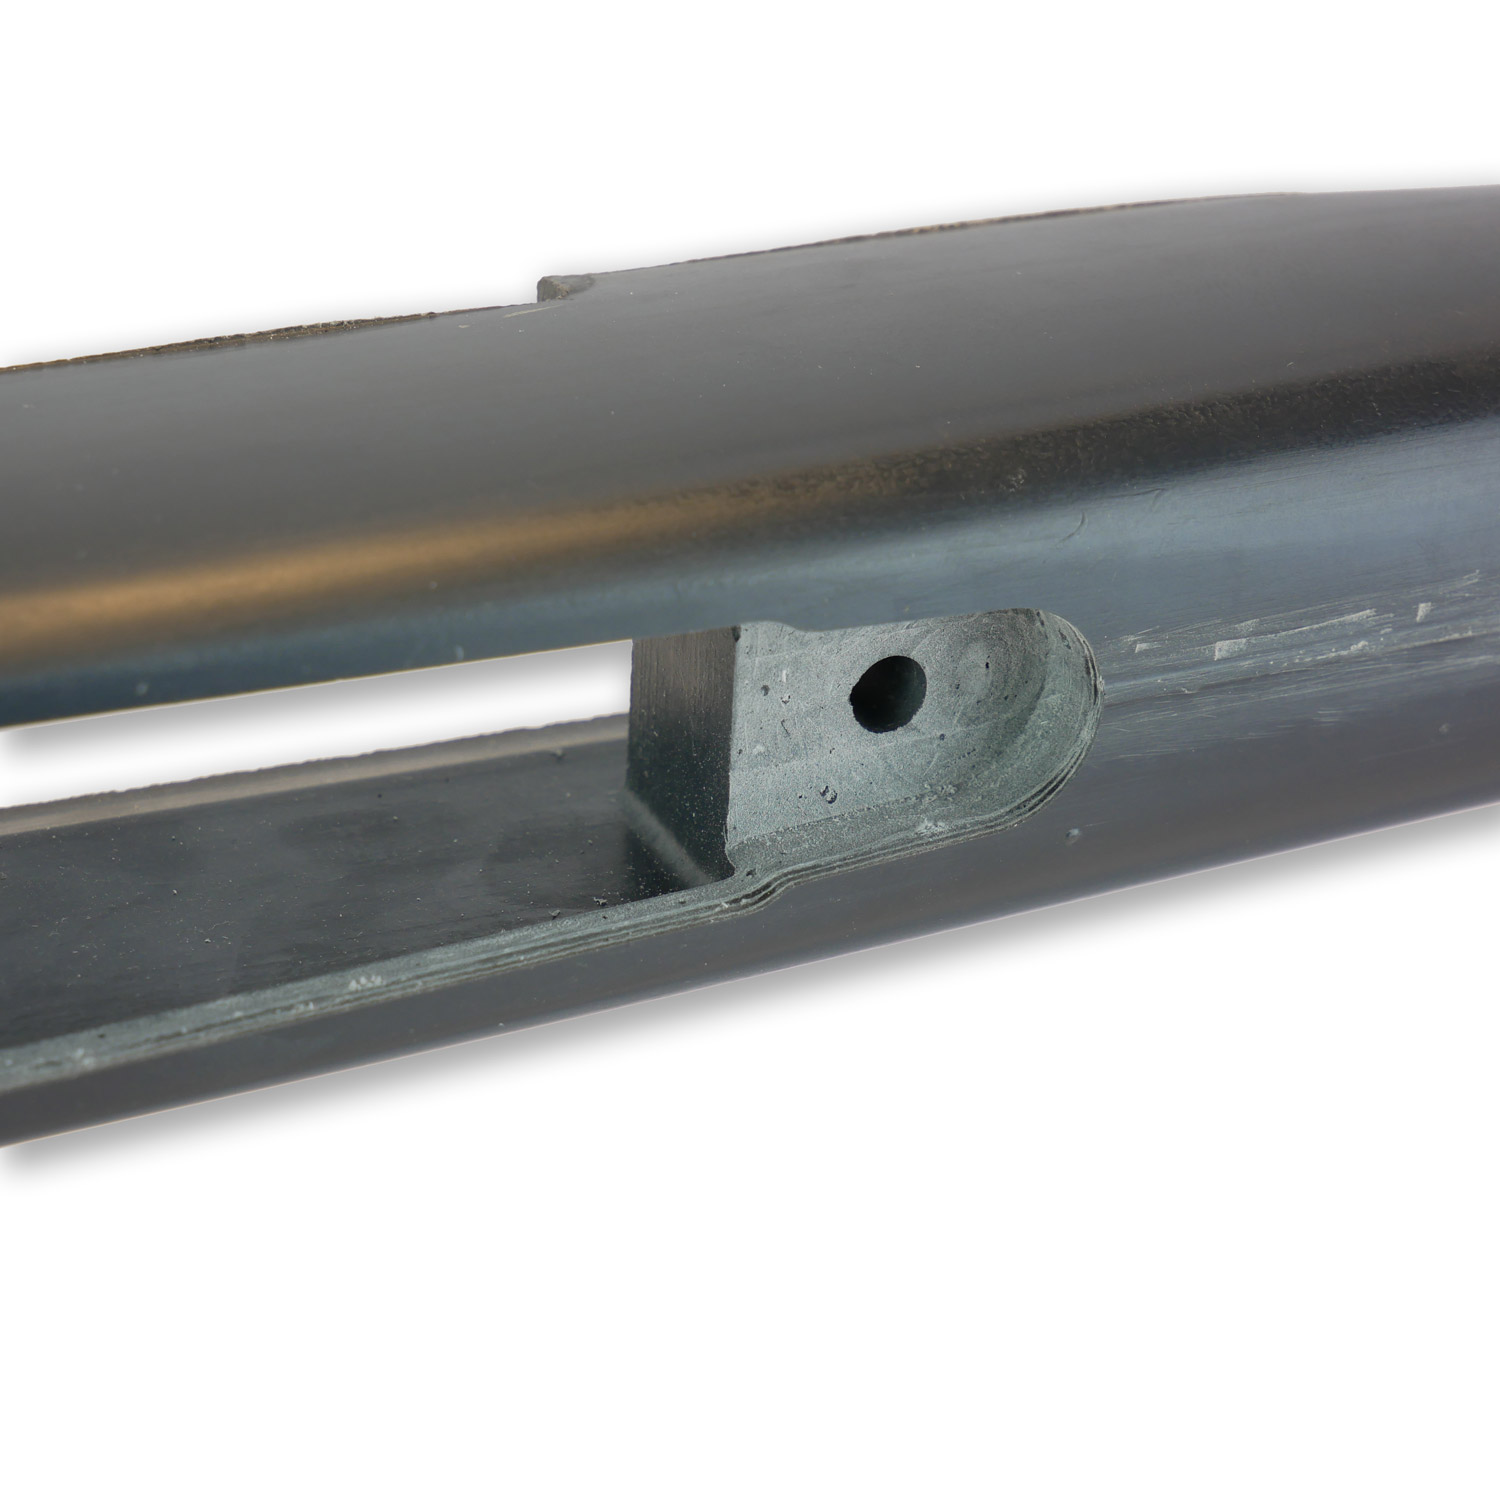 Bansner Classic, composite stocks, bottom view, inlet detail